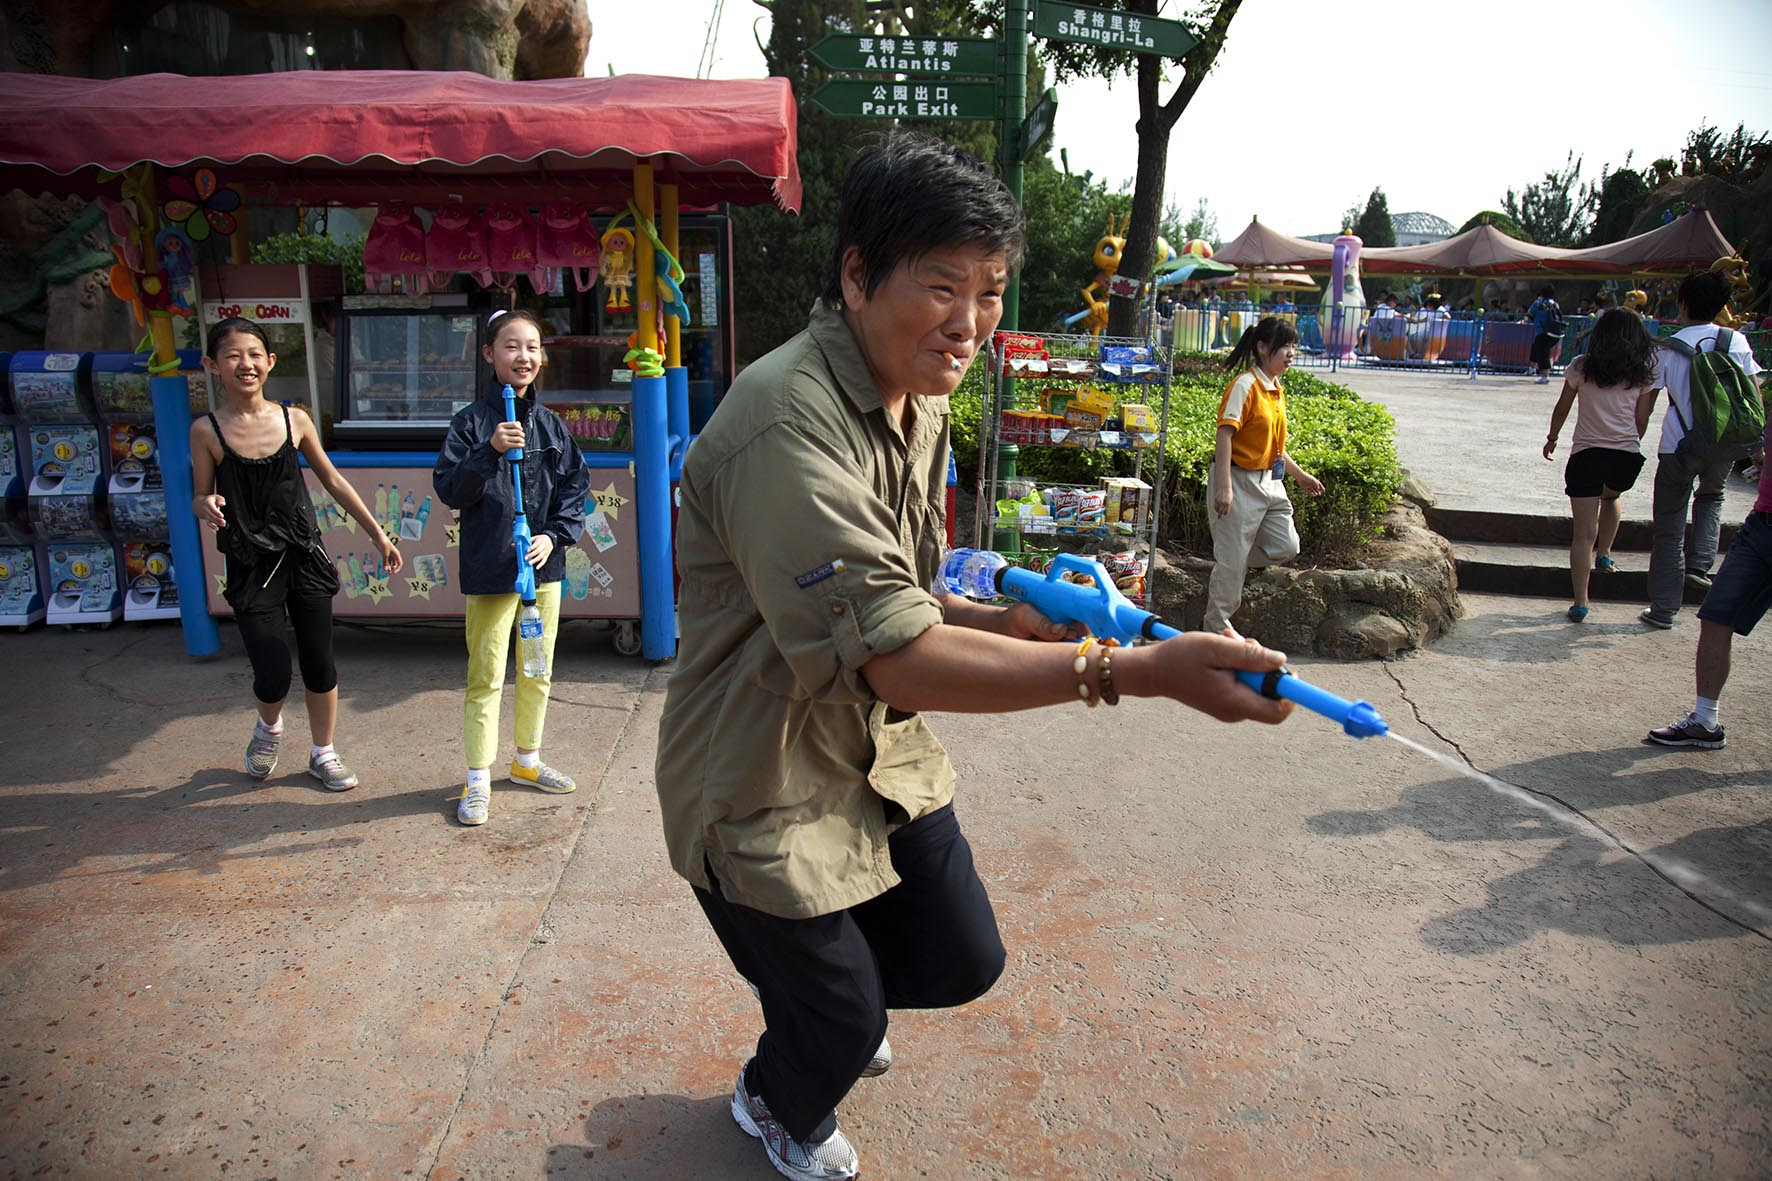 One parent joins in a water pistol fight at Happy Valley amusement park.